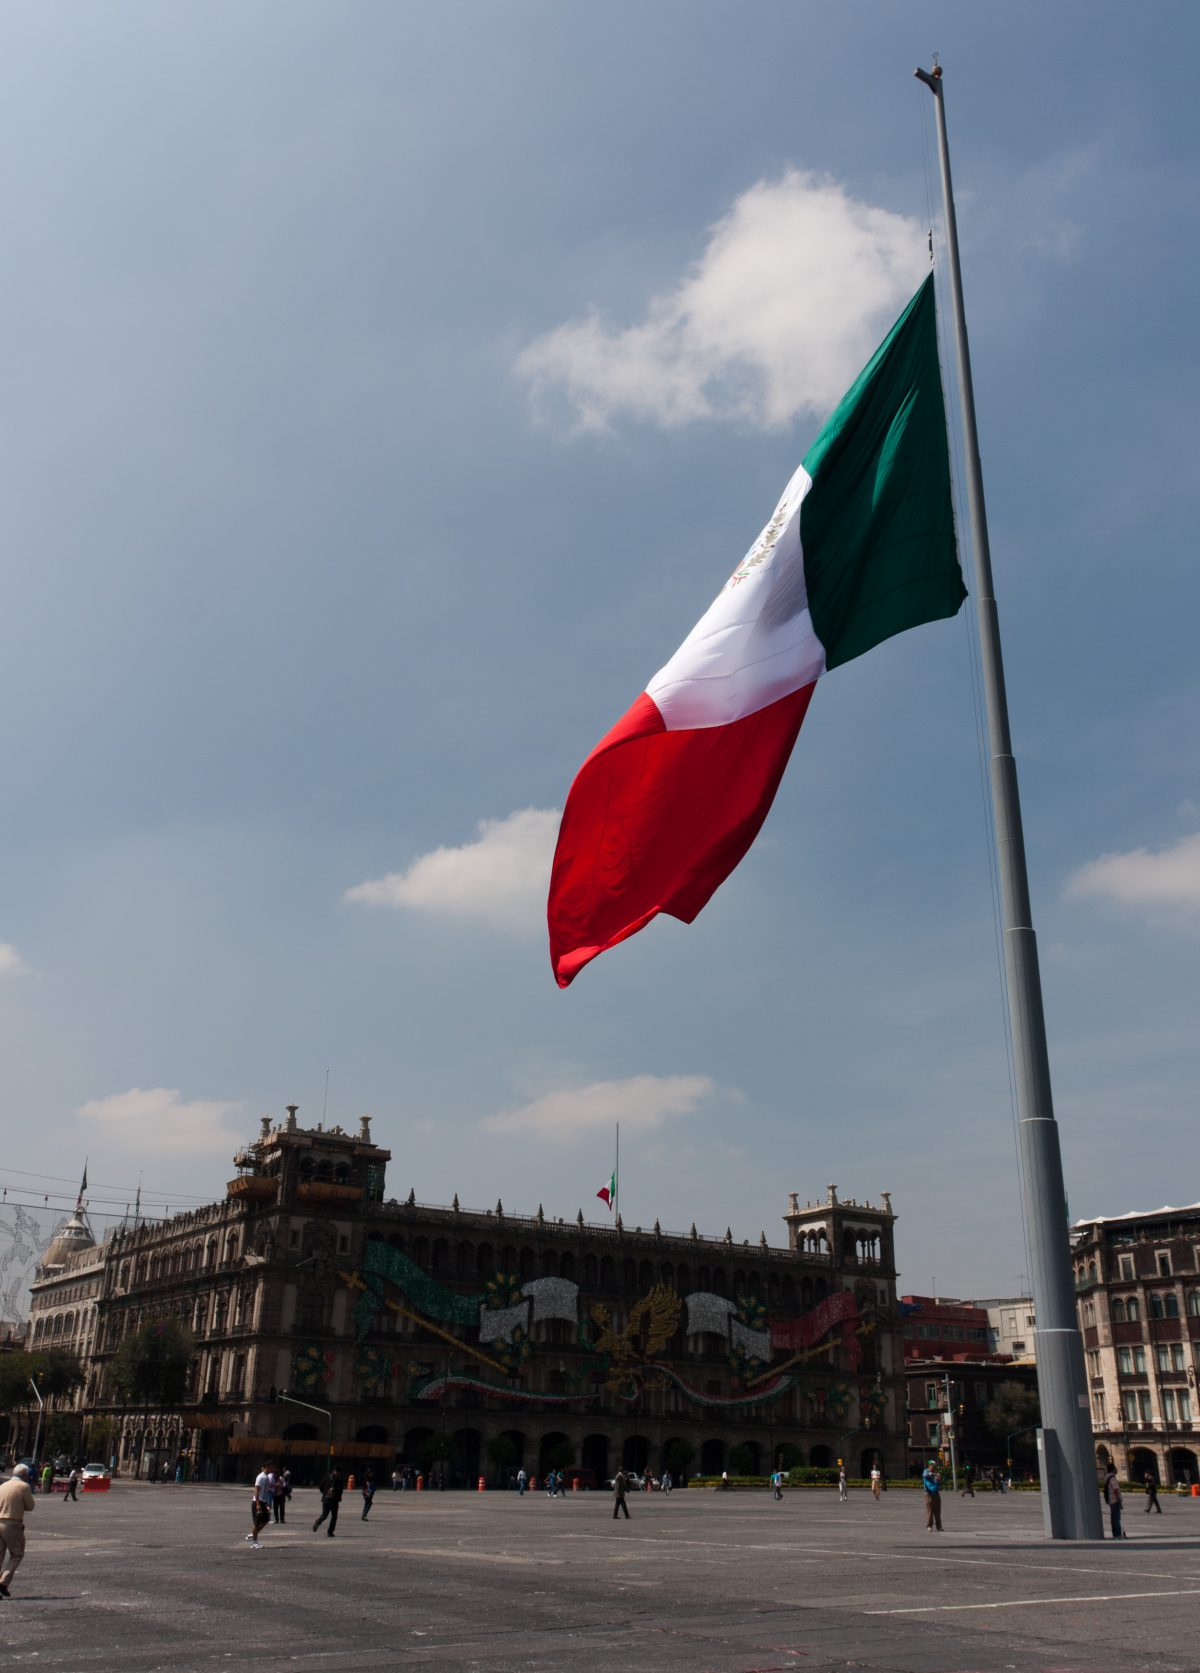 Zocalo, landmark, building, flag